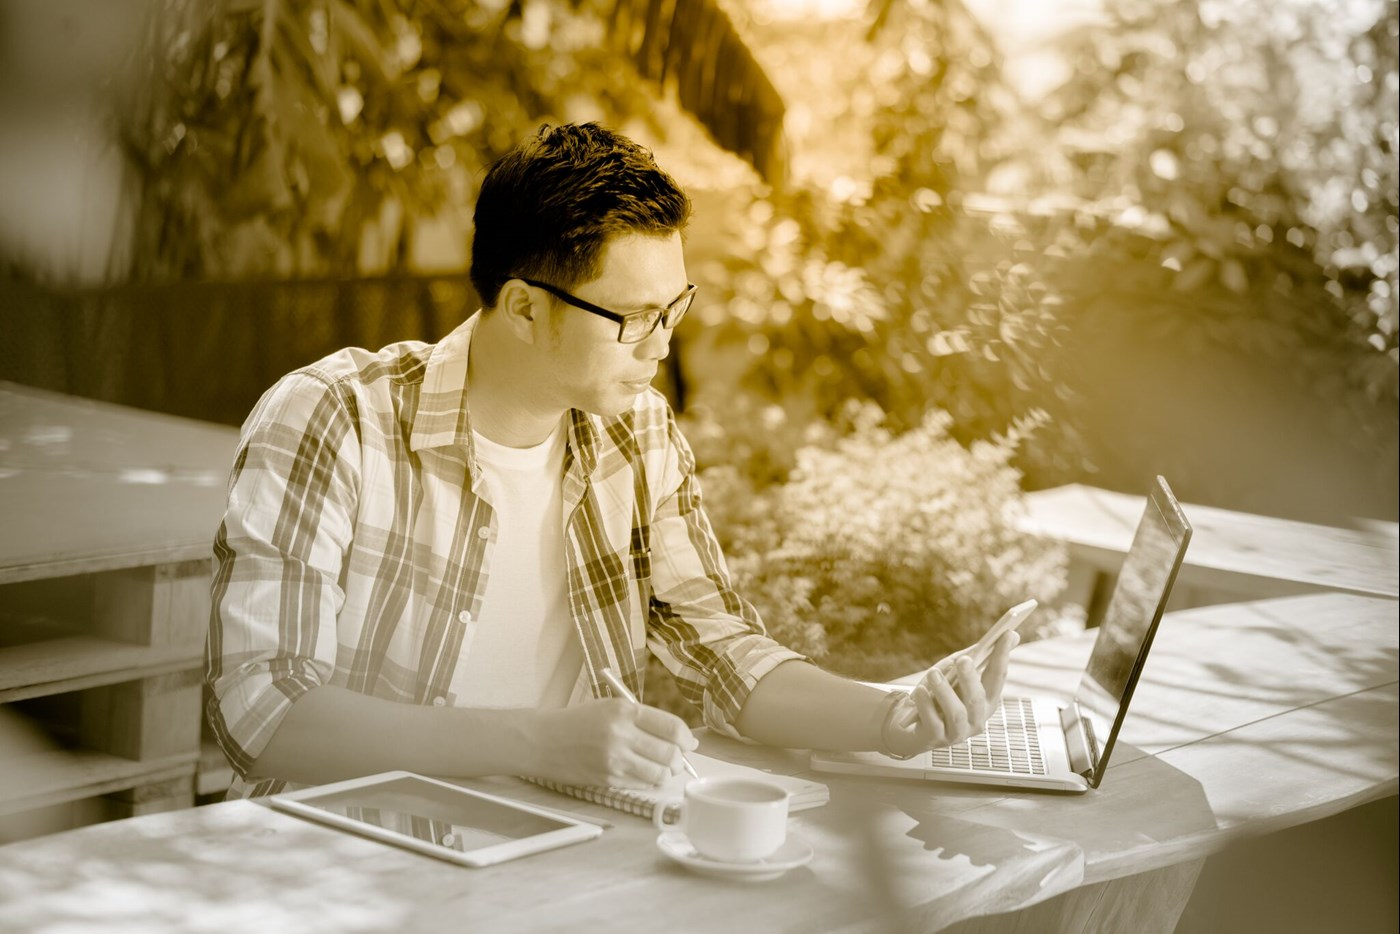 Male working outdoors on mobile and laptop wearing eyeglasses